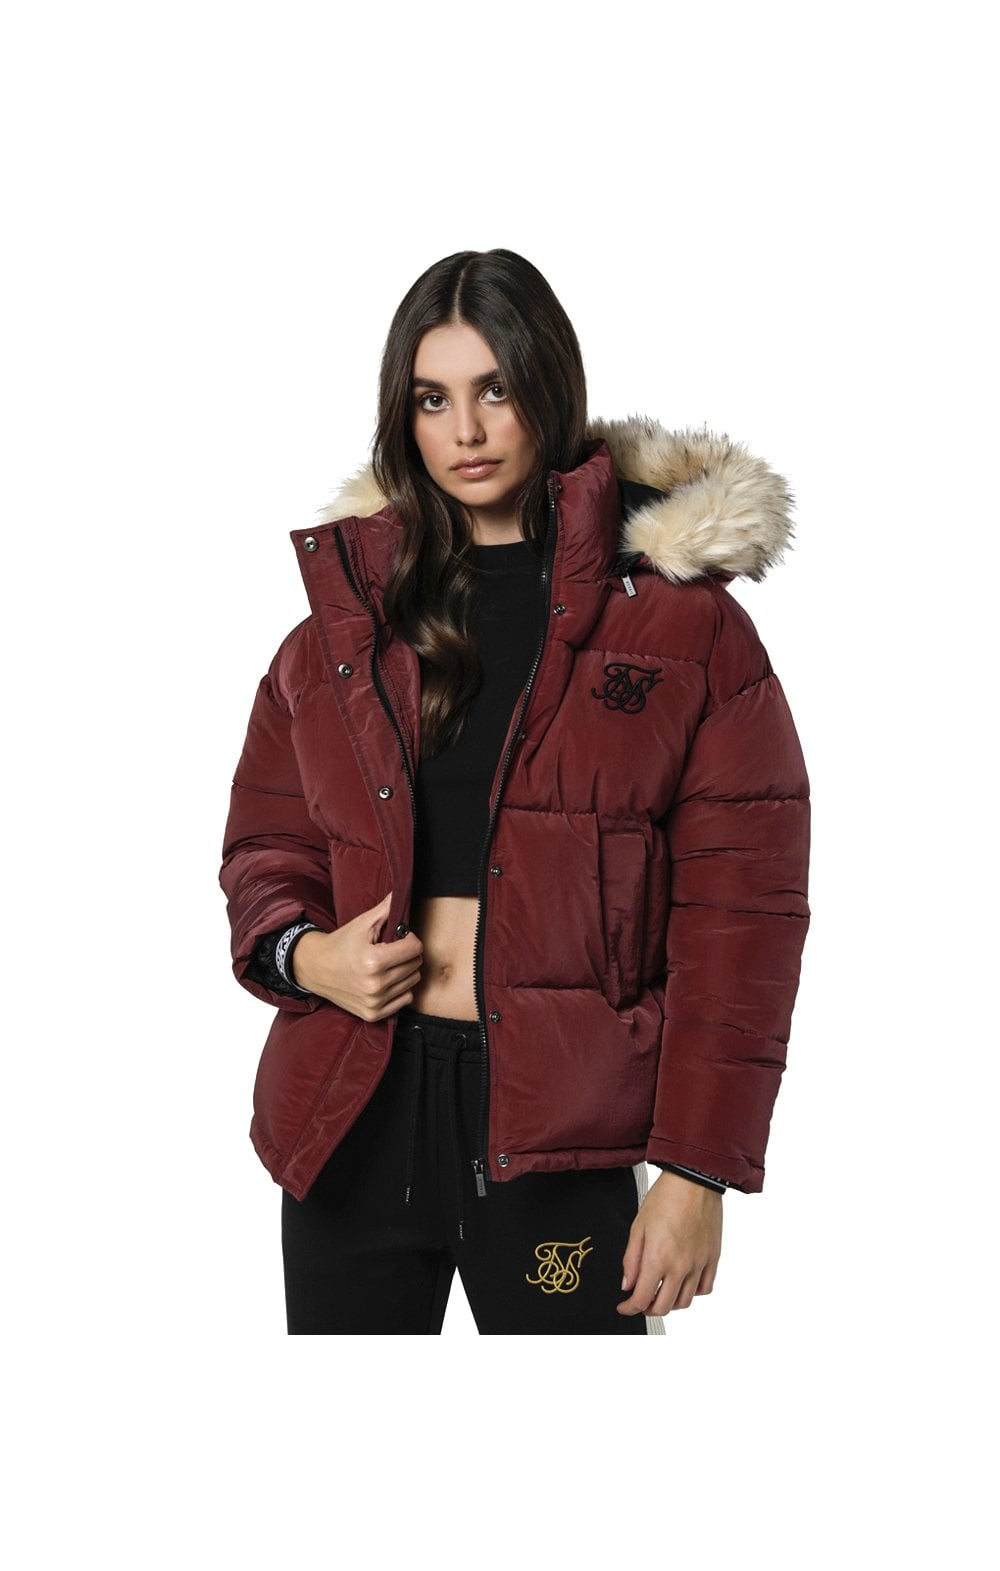 SikSilk Short Parka Jacket - Burgundy